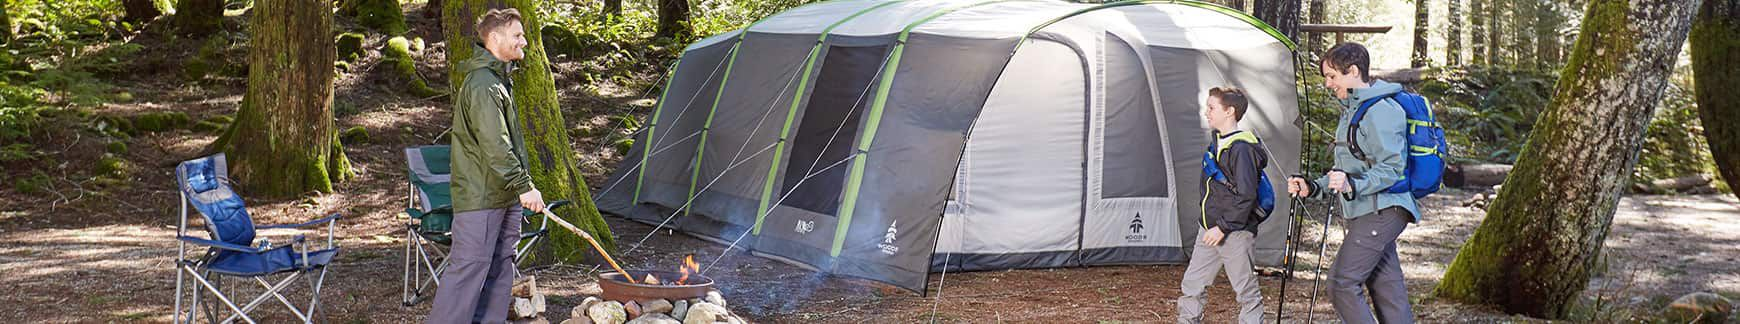 Shop all camping products